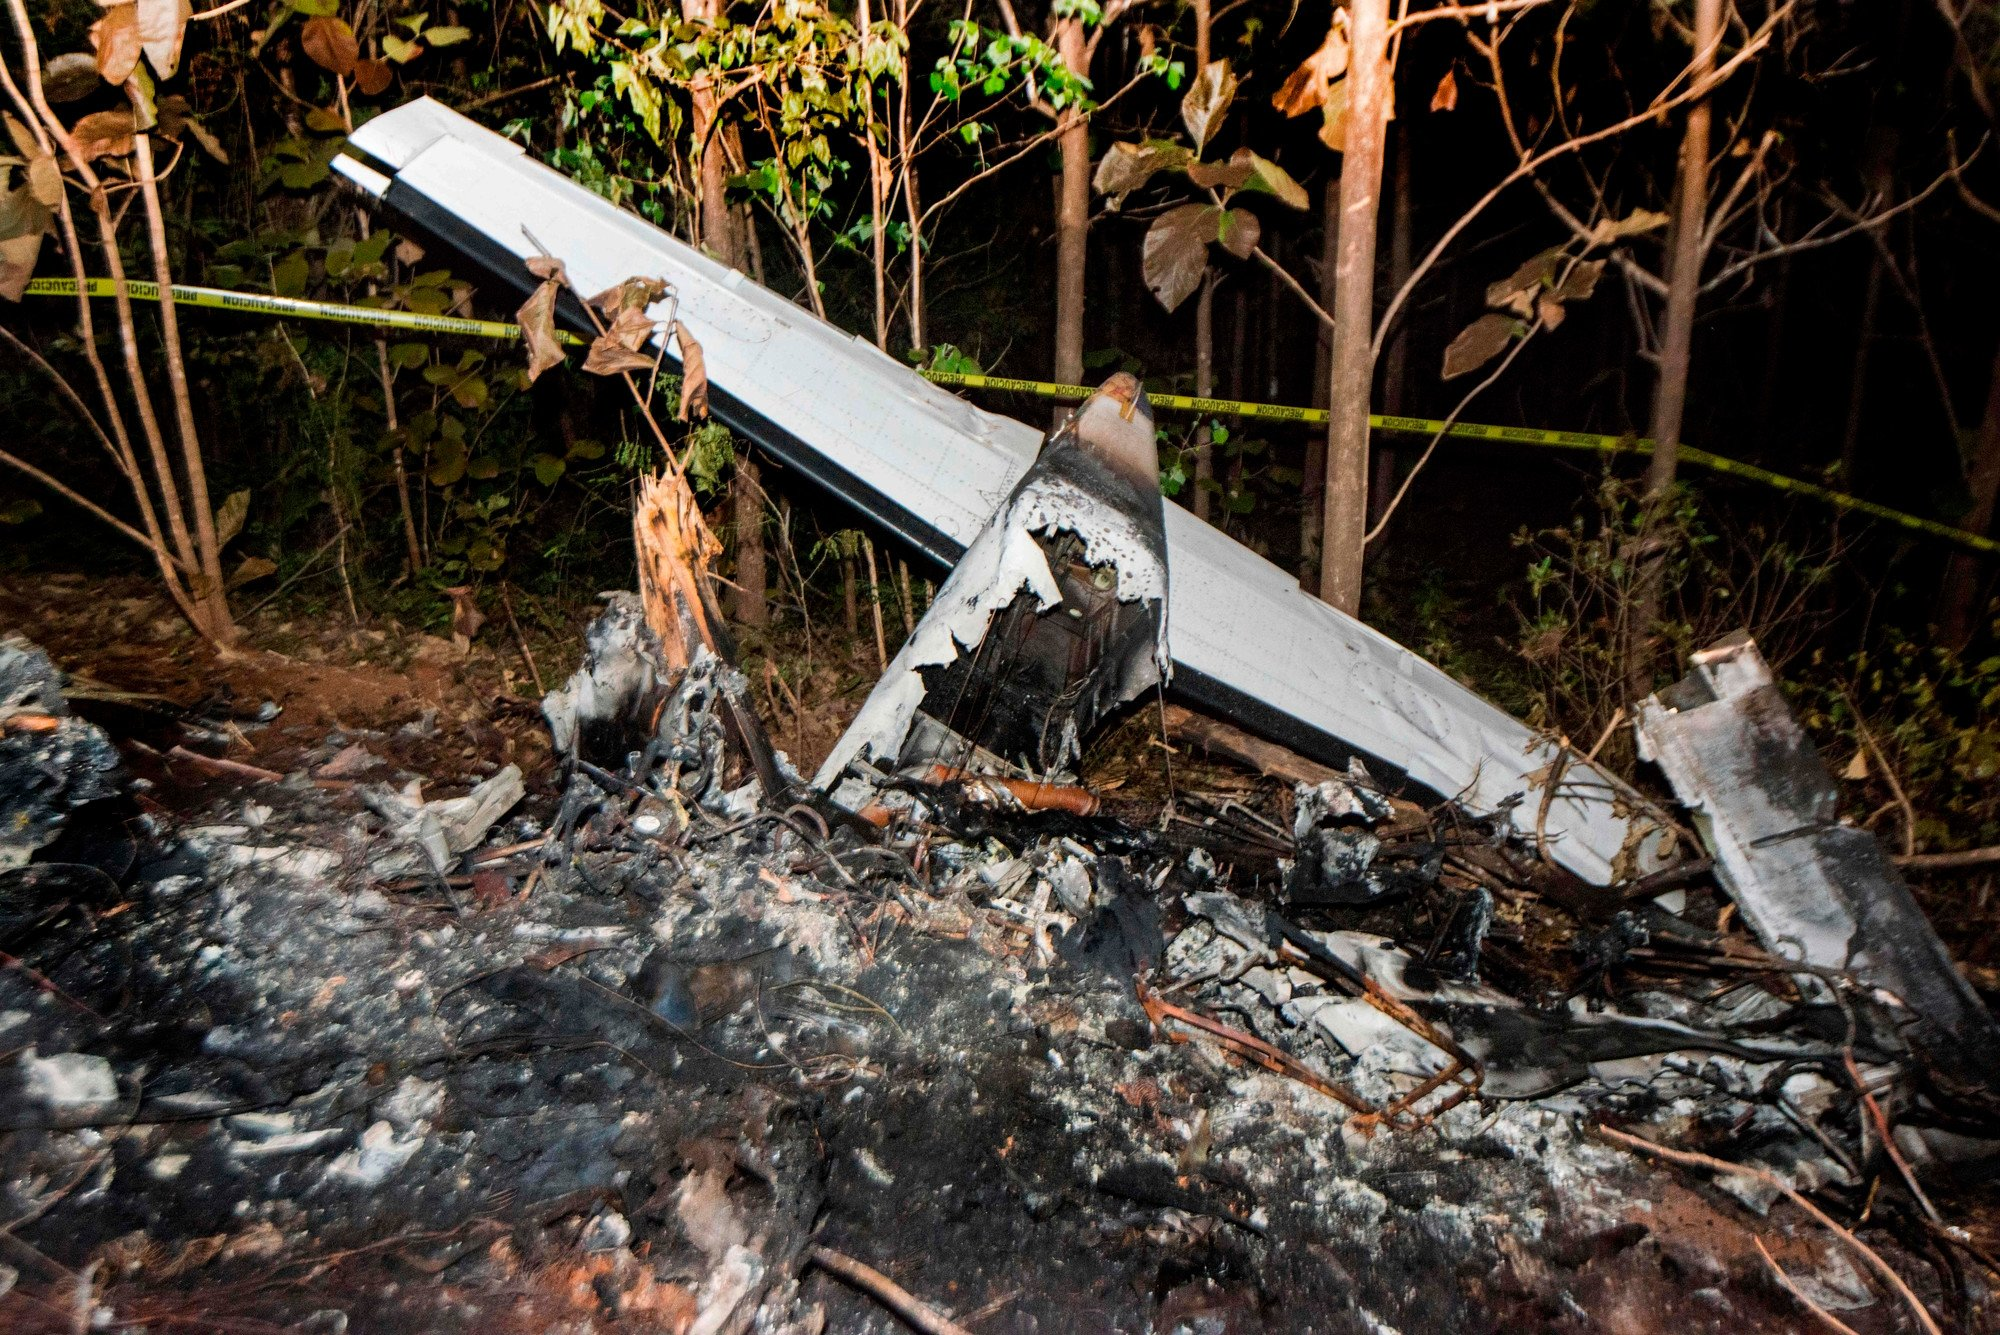 Plane was barely airborne before fiery crash that killed 12